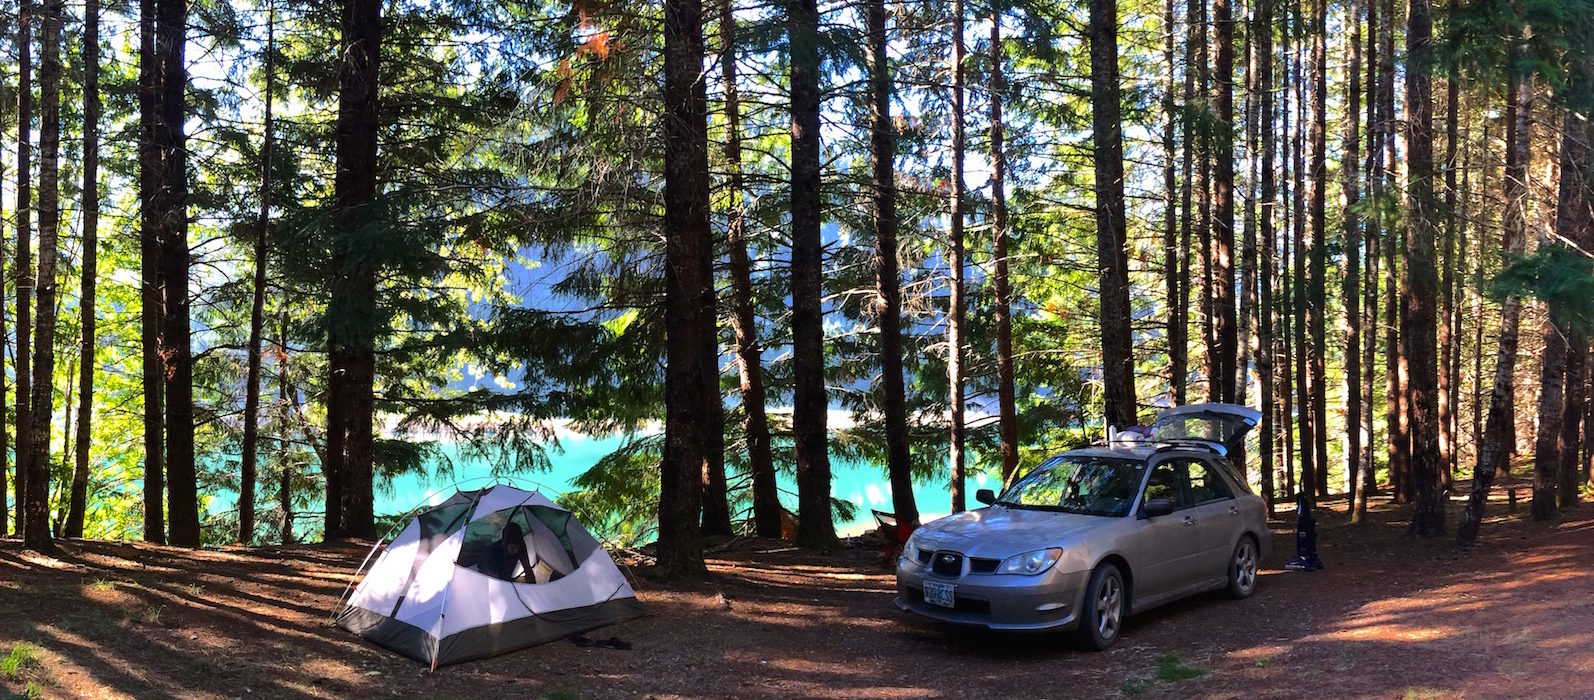 Tent camping with Subaru in trees near lake, Oregon